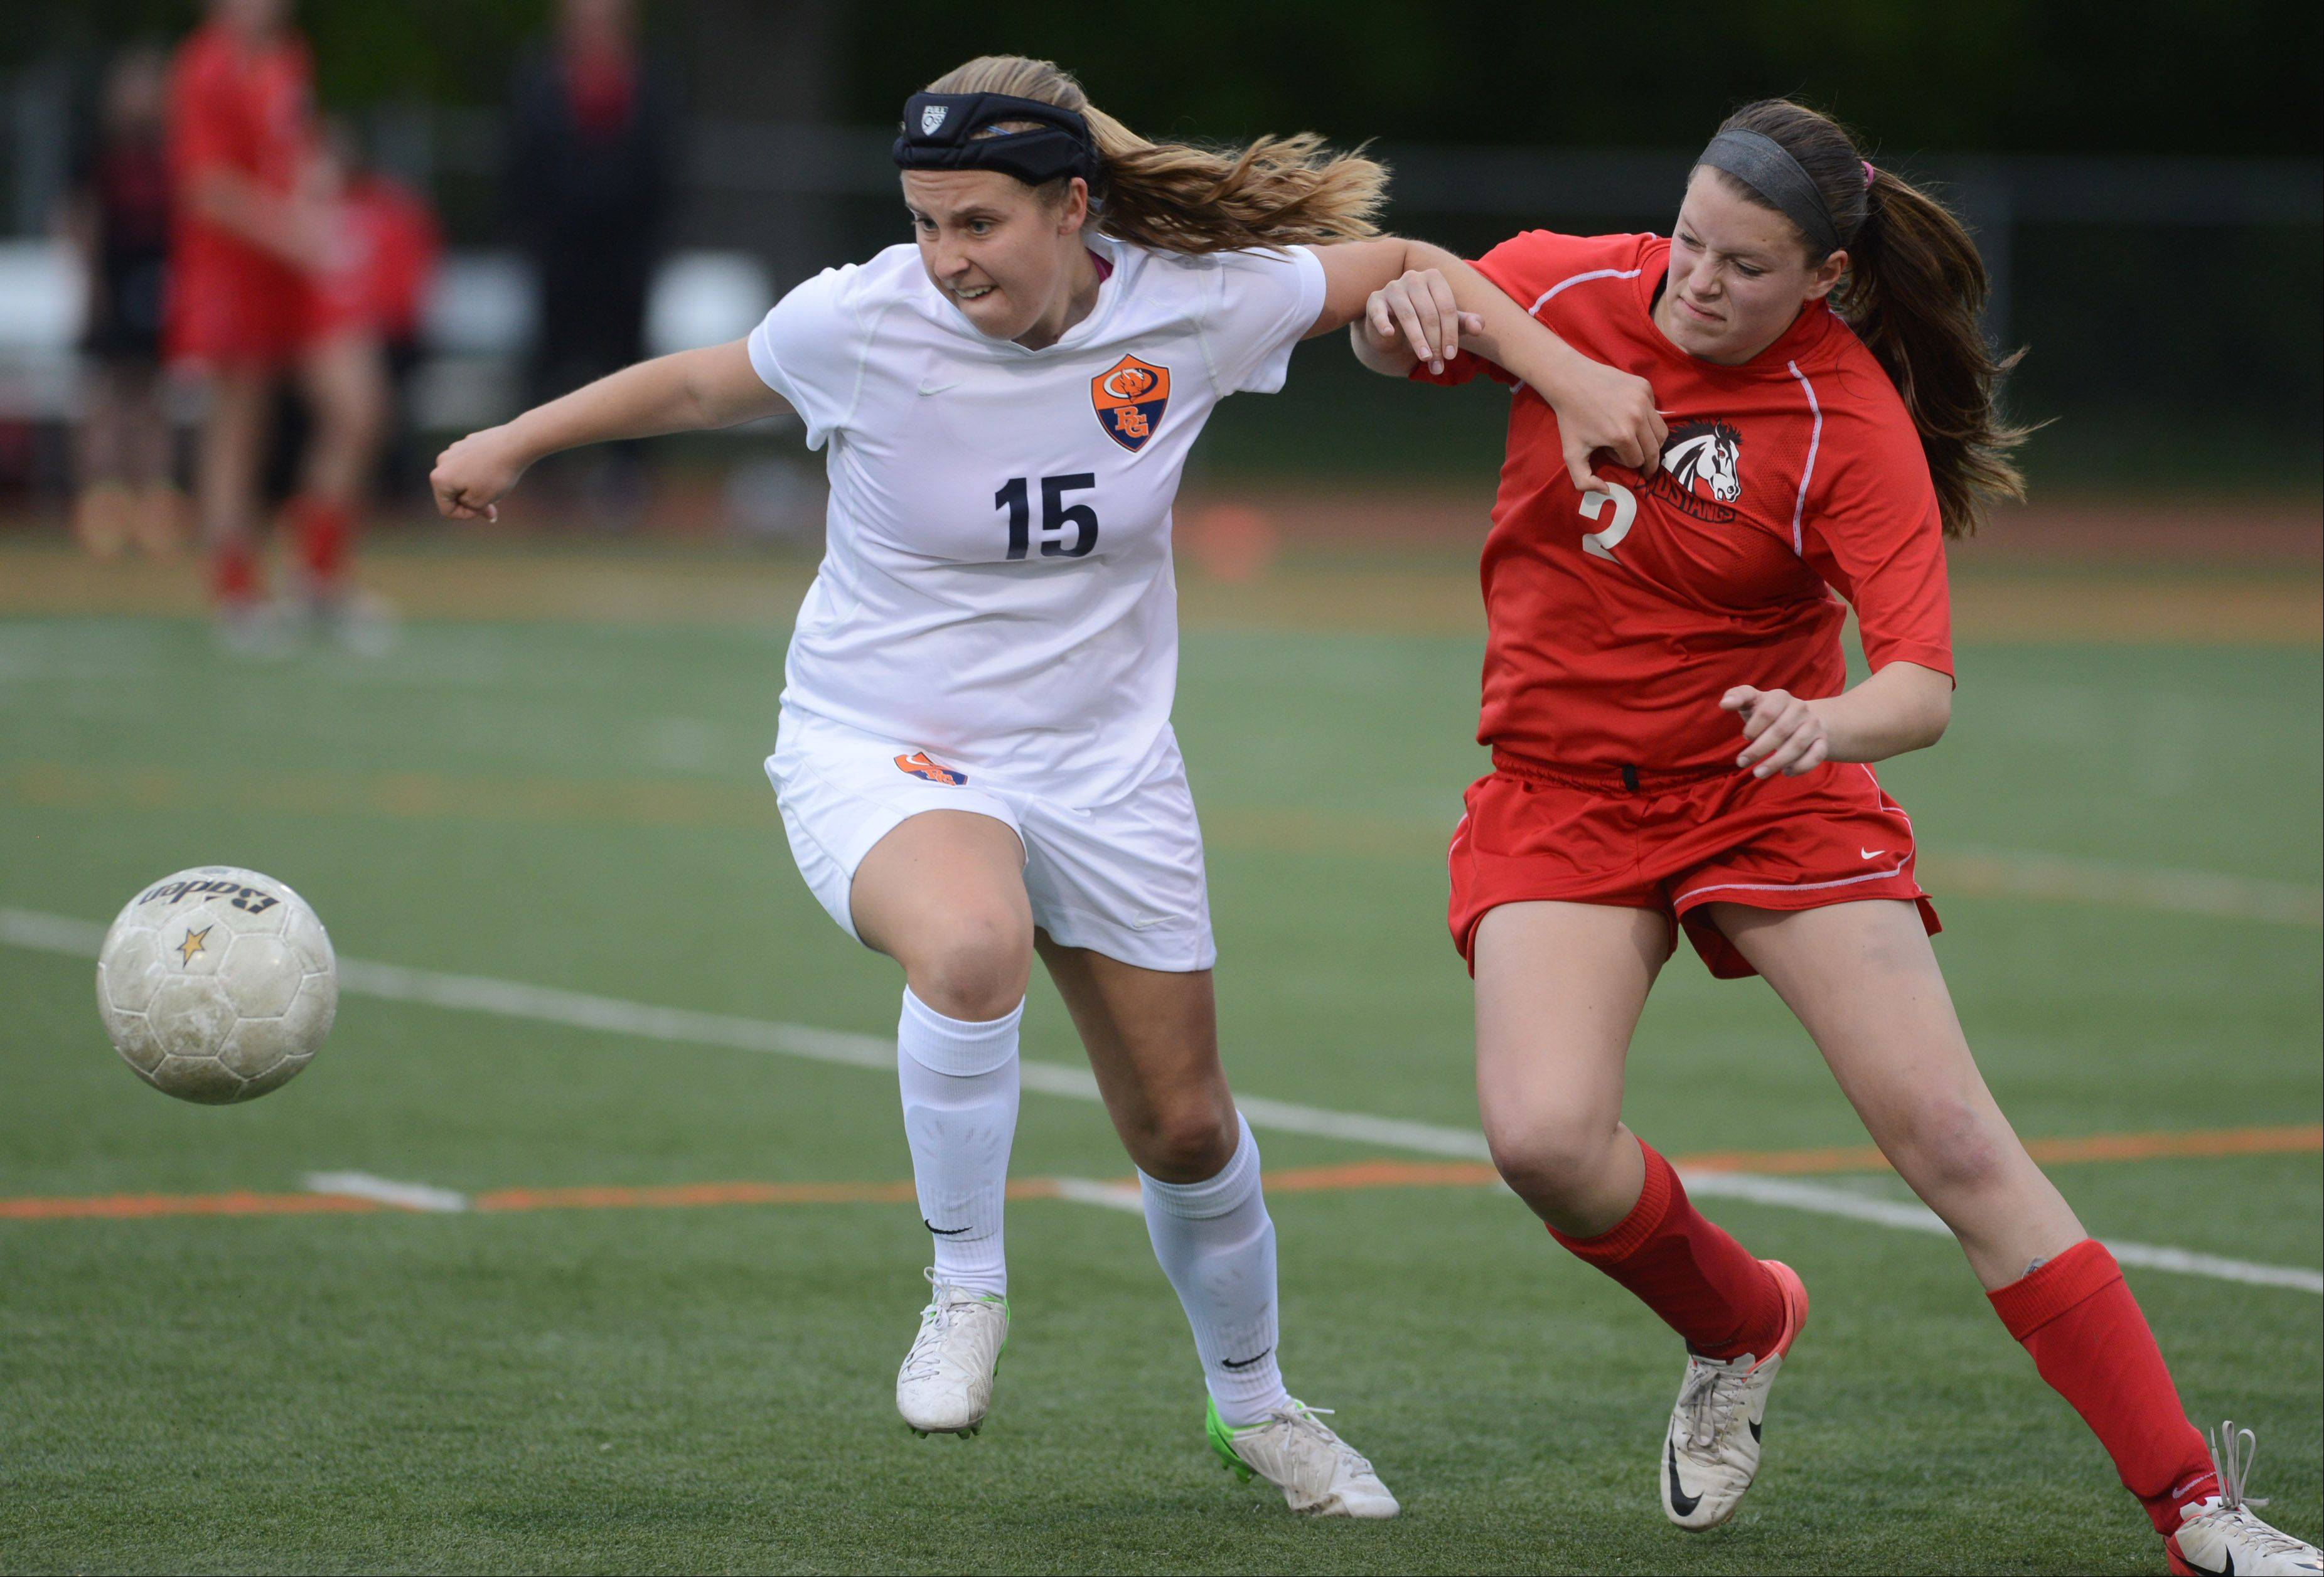 Buffalo Grove's Kelly VandeMerkt (15) and Mundelein's Shannon Carroll chase down a loose ball during Friday's Class 3A girls soccer regional final at Libertyville.